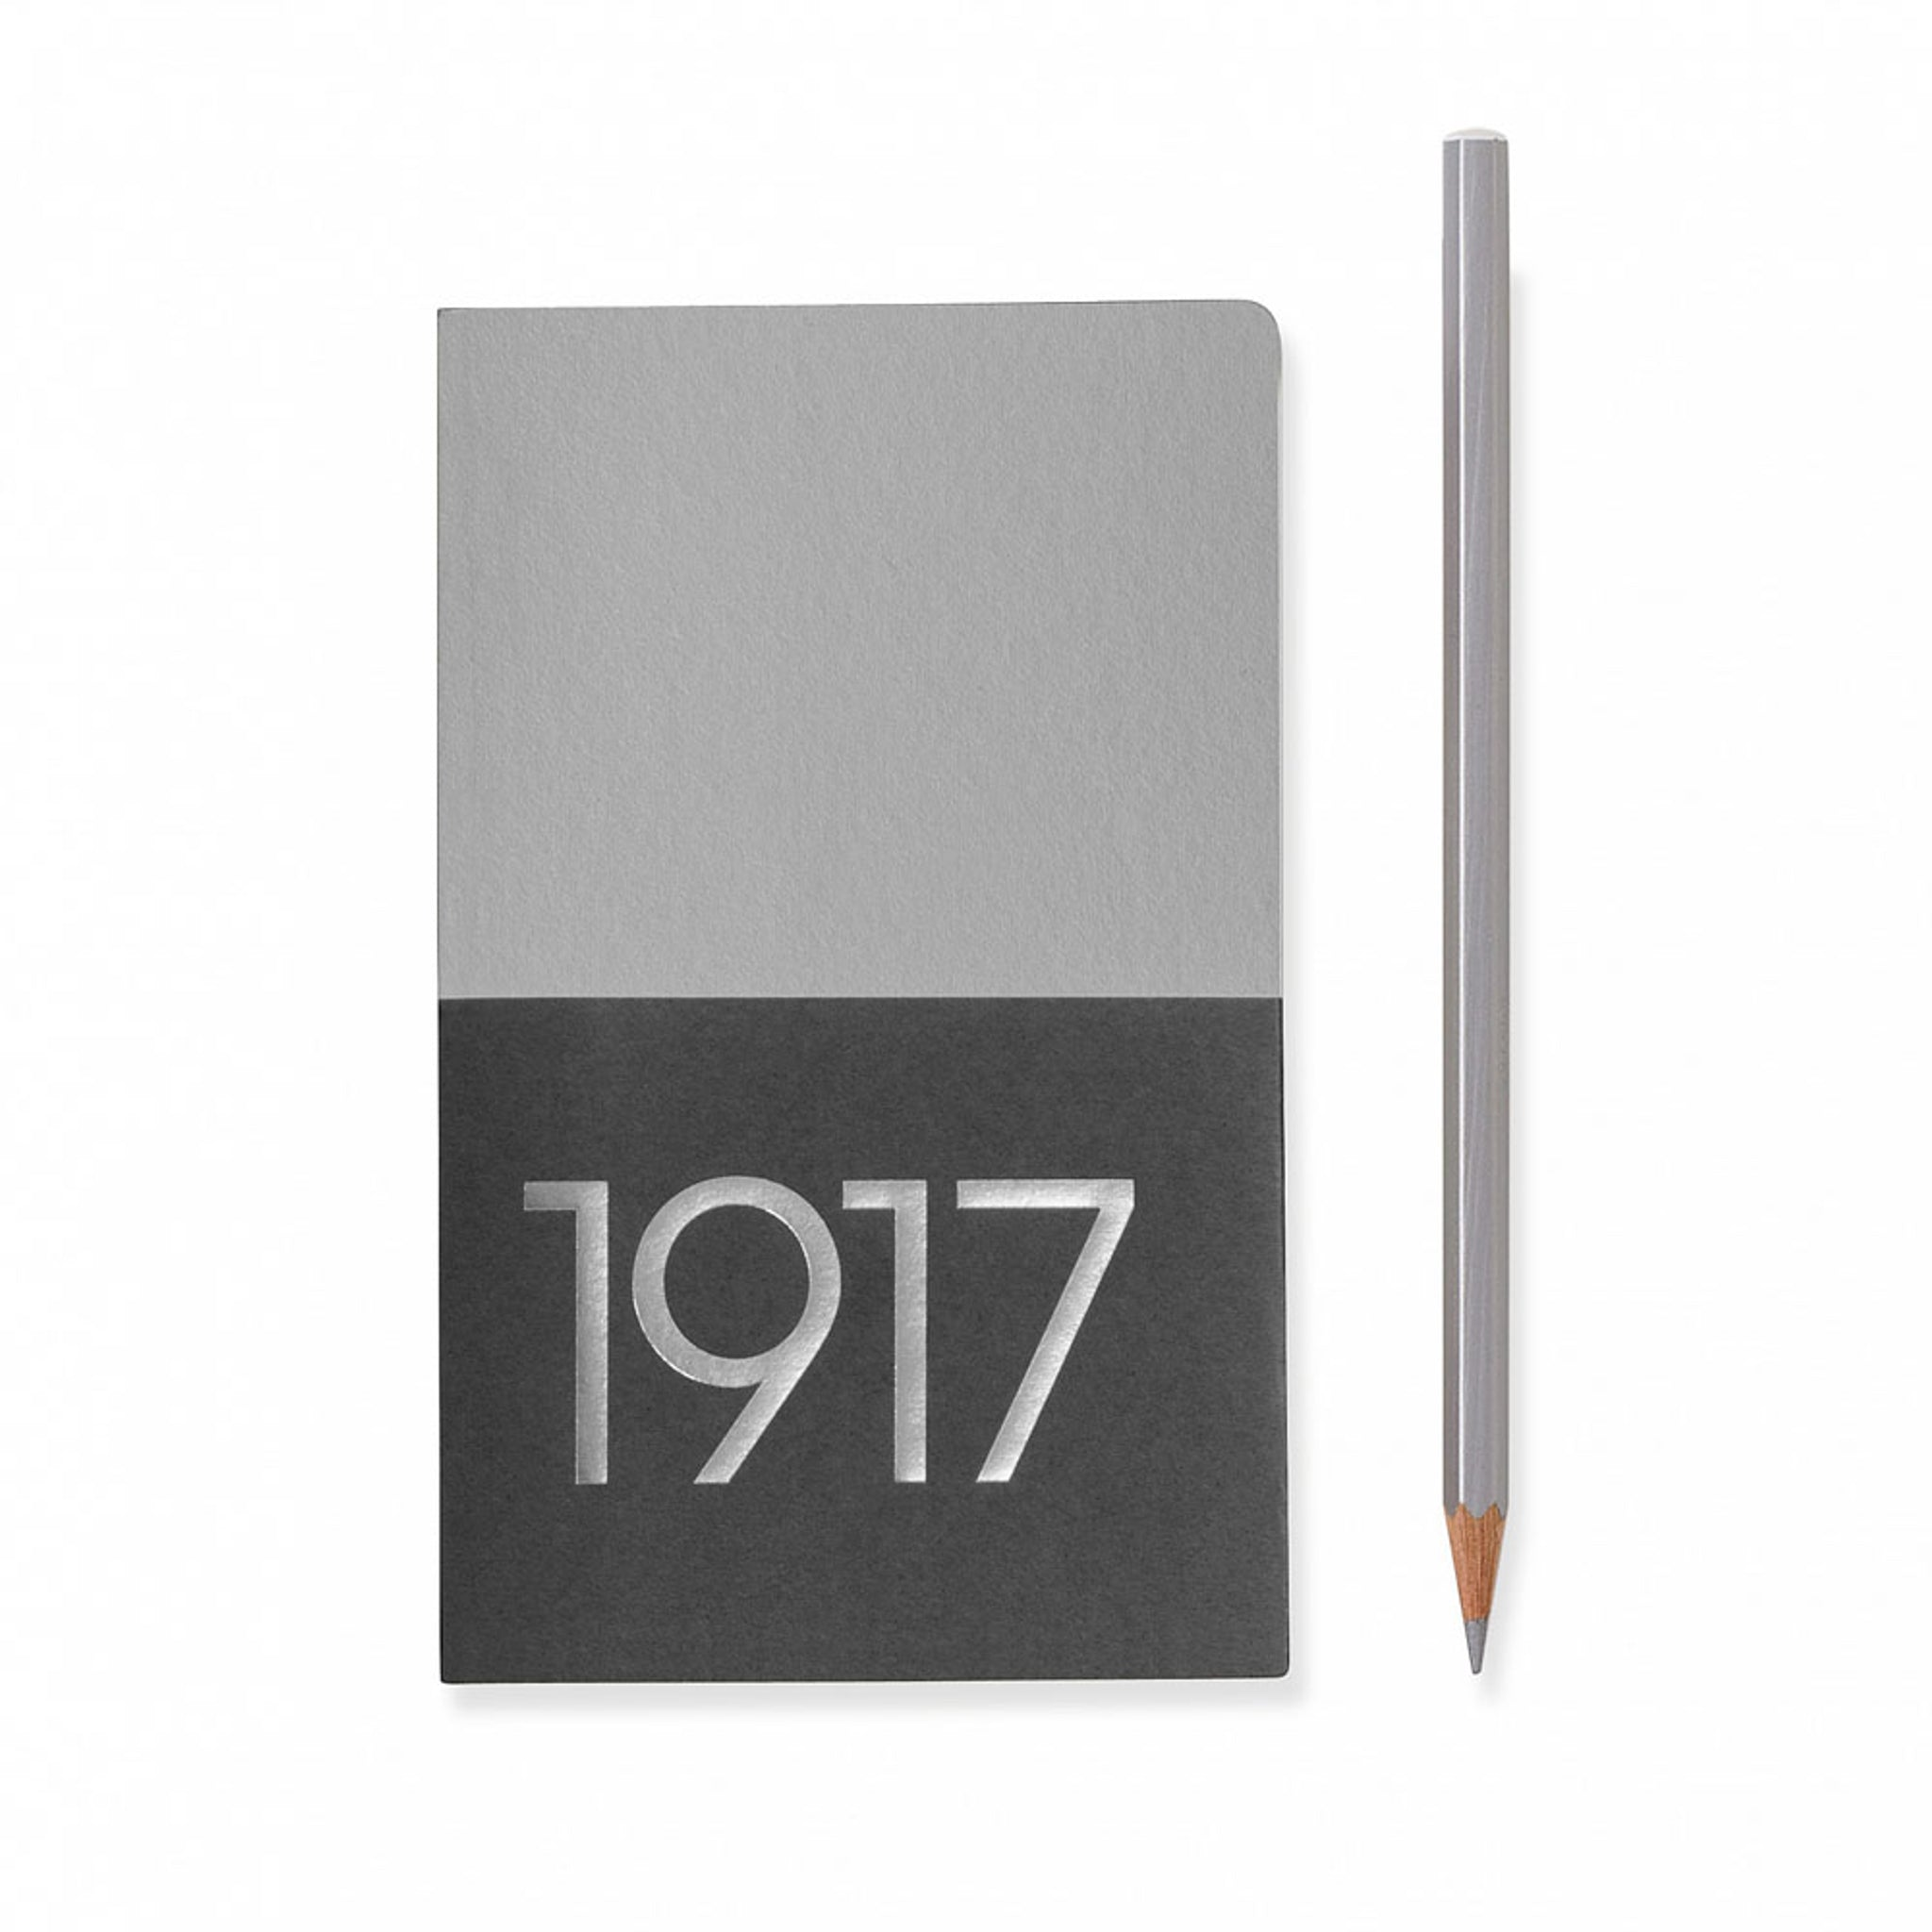 Leuchtturm1917 Metallic Edition A6 Pocket Jottbook Silver - Ruled (Twin Pack)